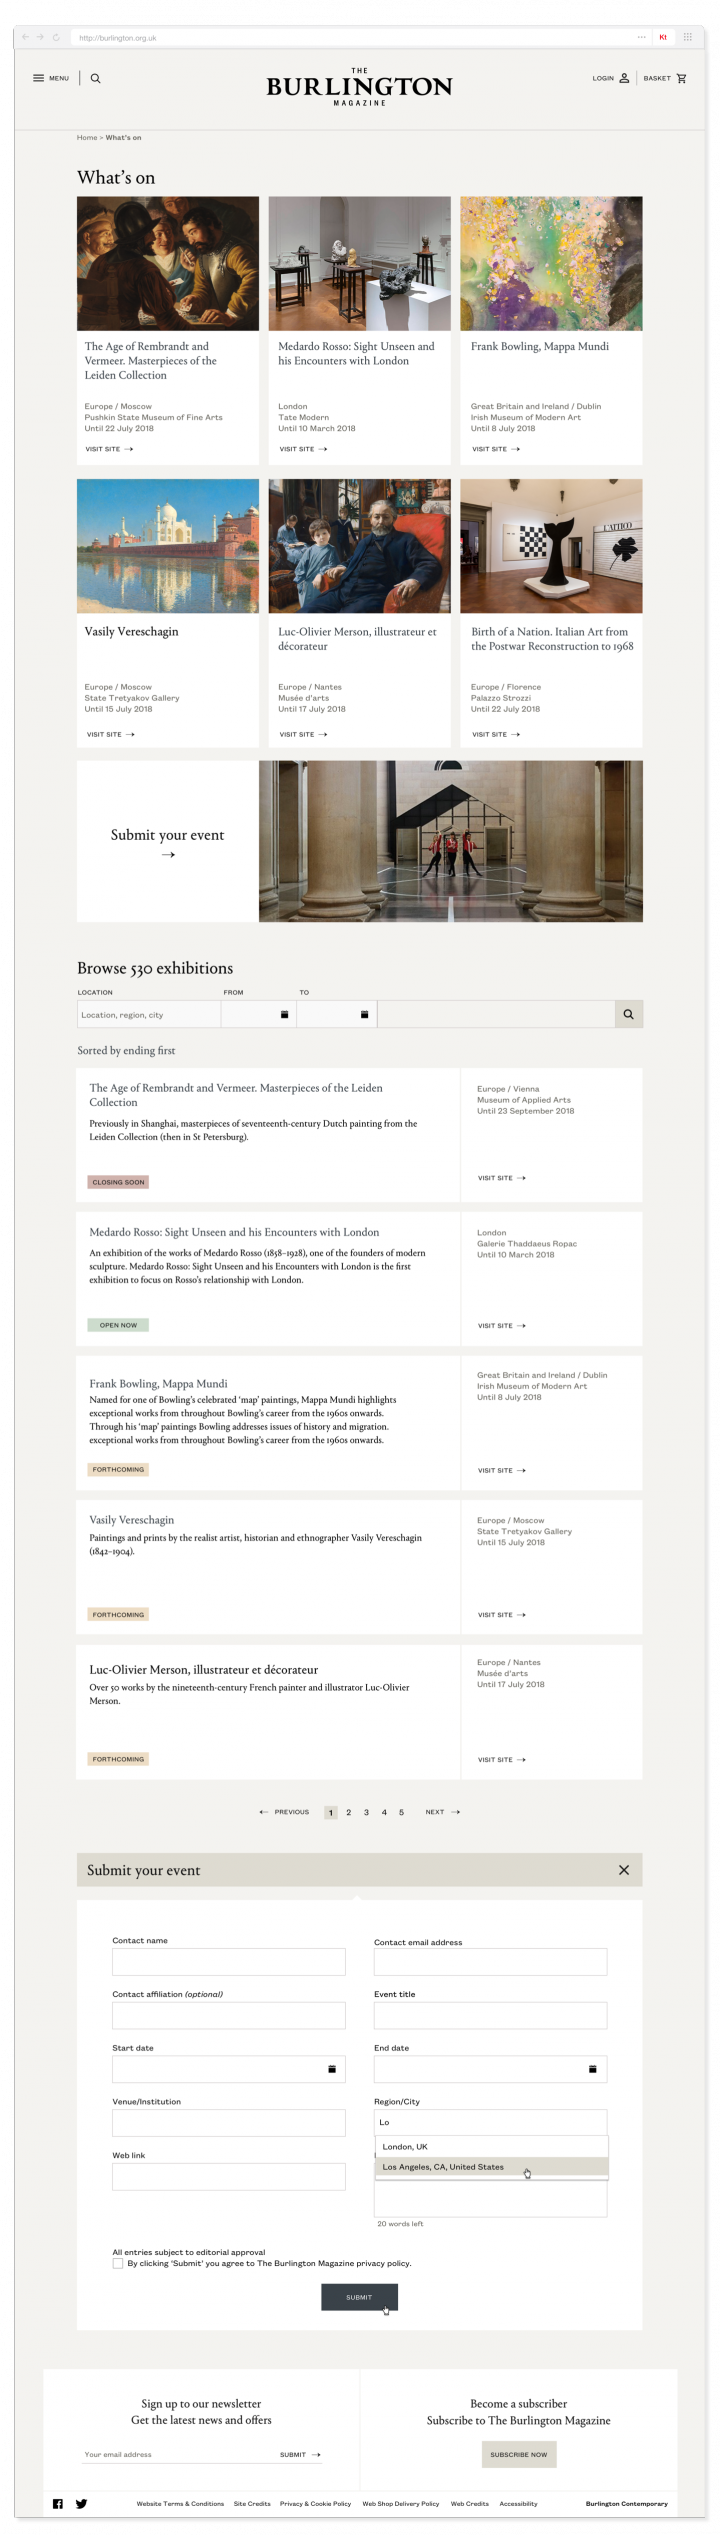 What's On page and listings